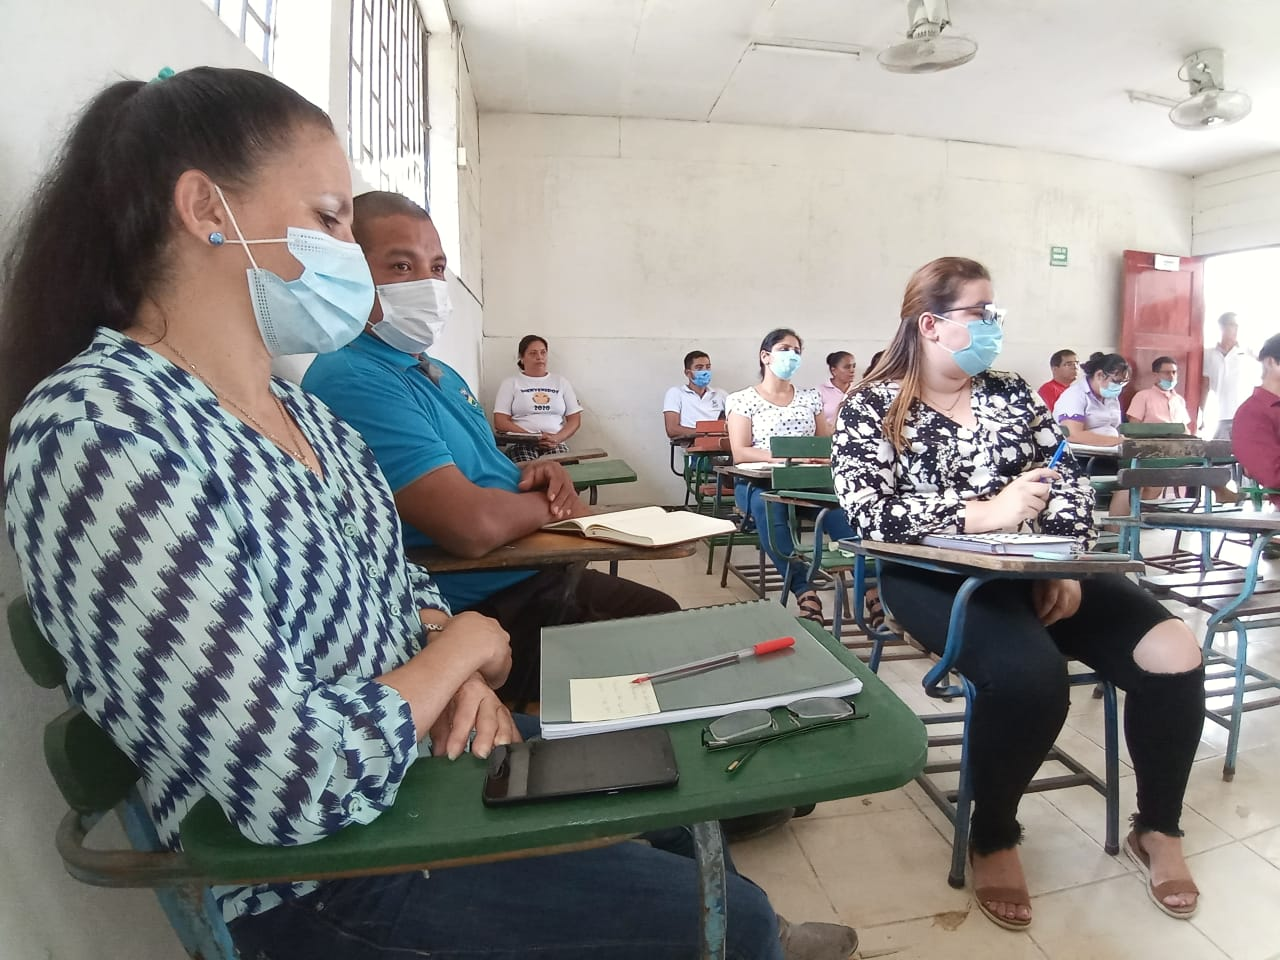 Dialogue with teaching staff at URACCAN Las Minas venue